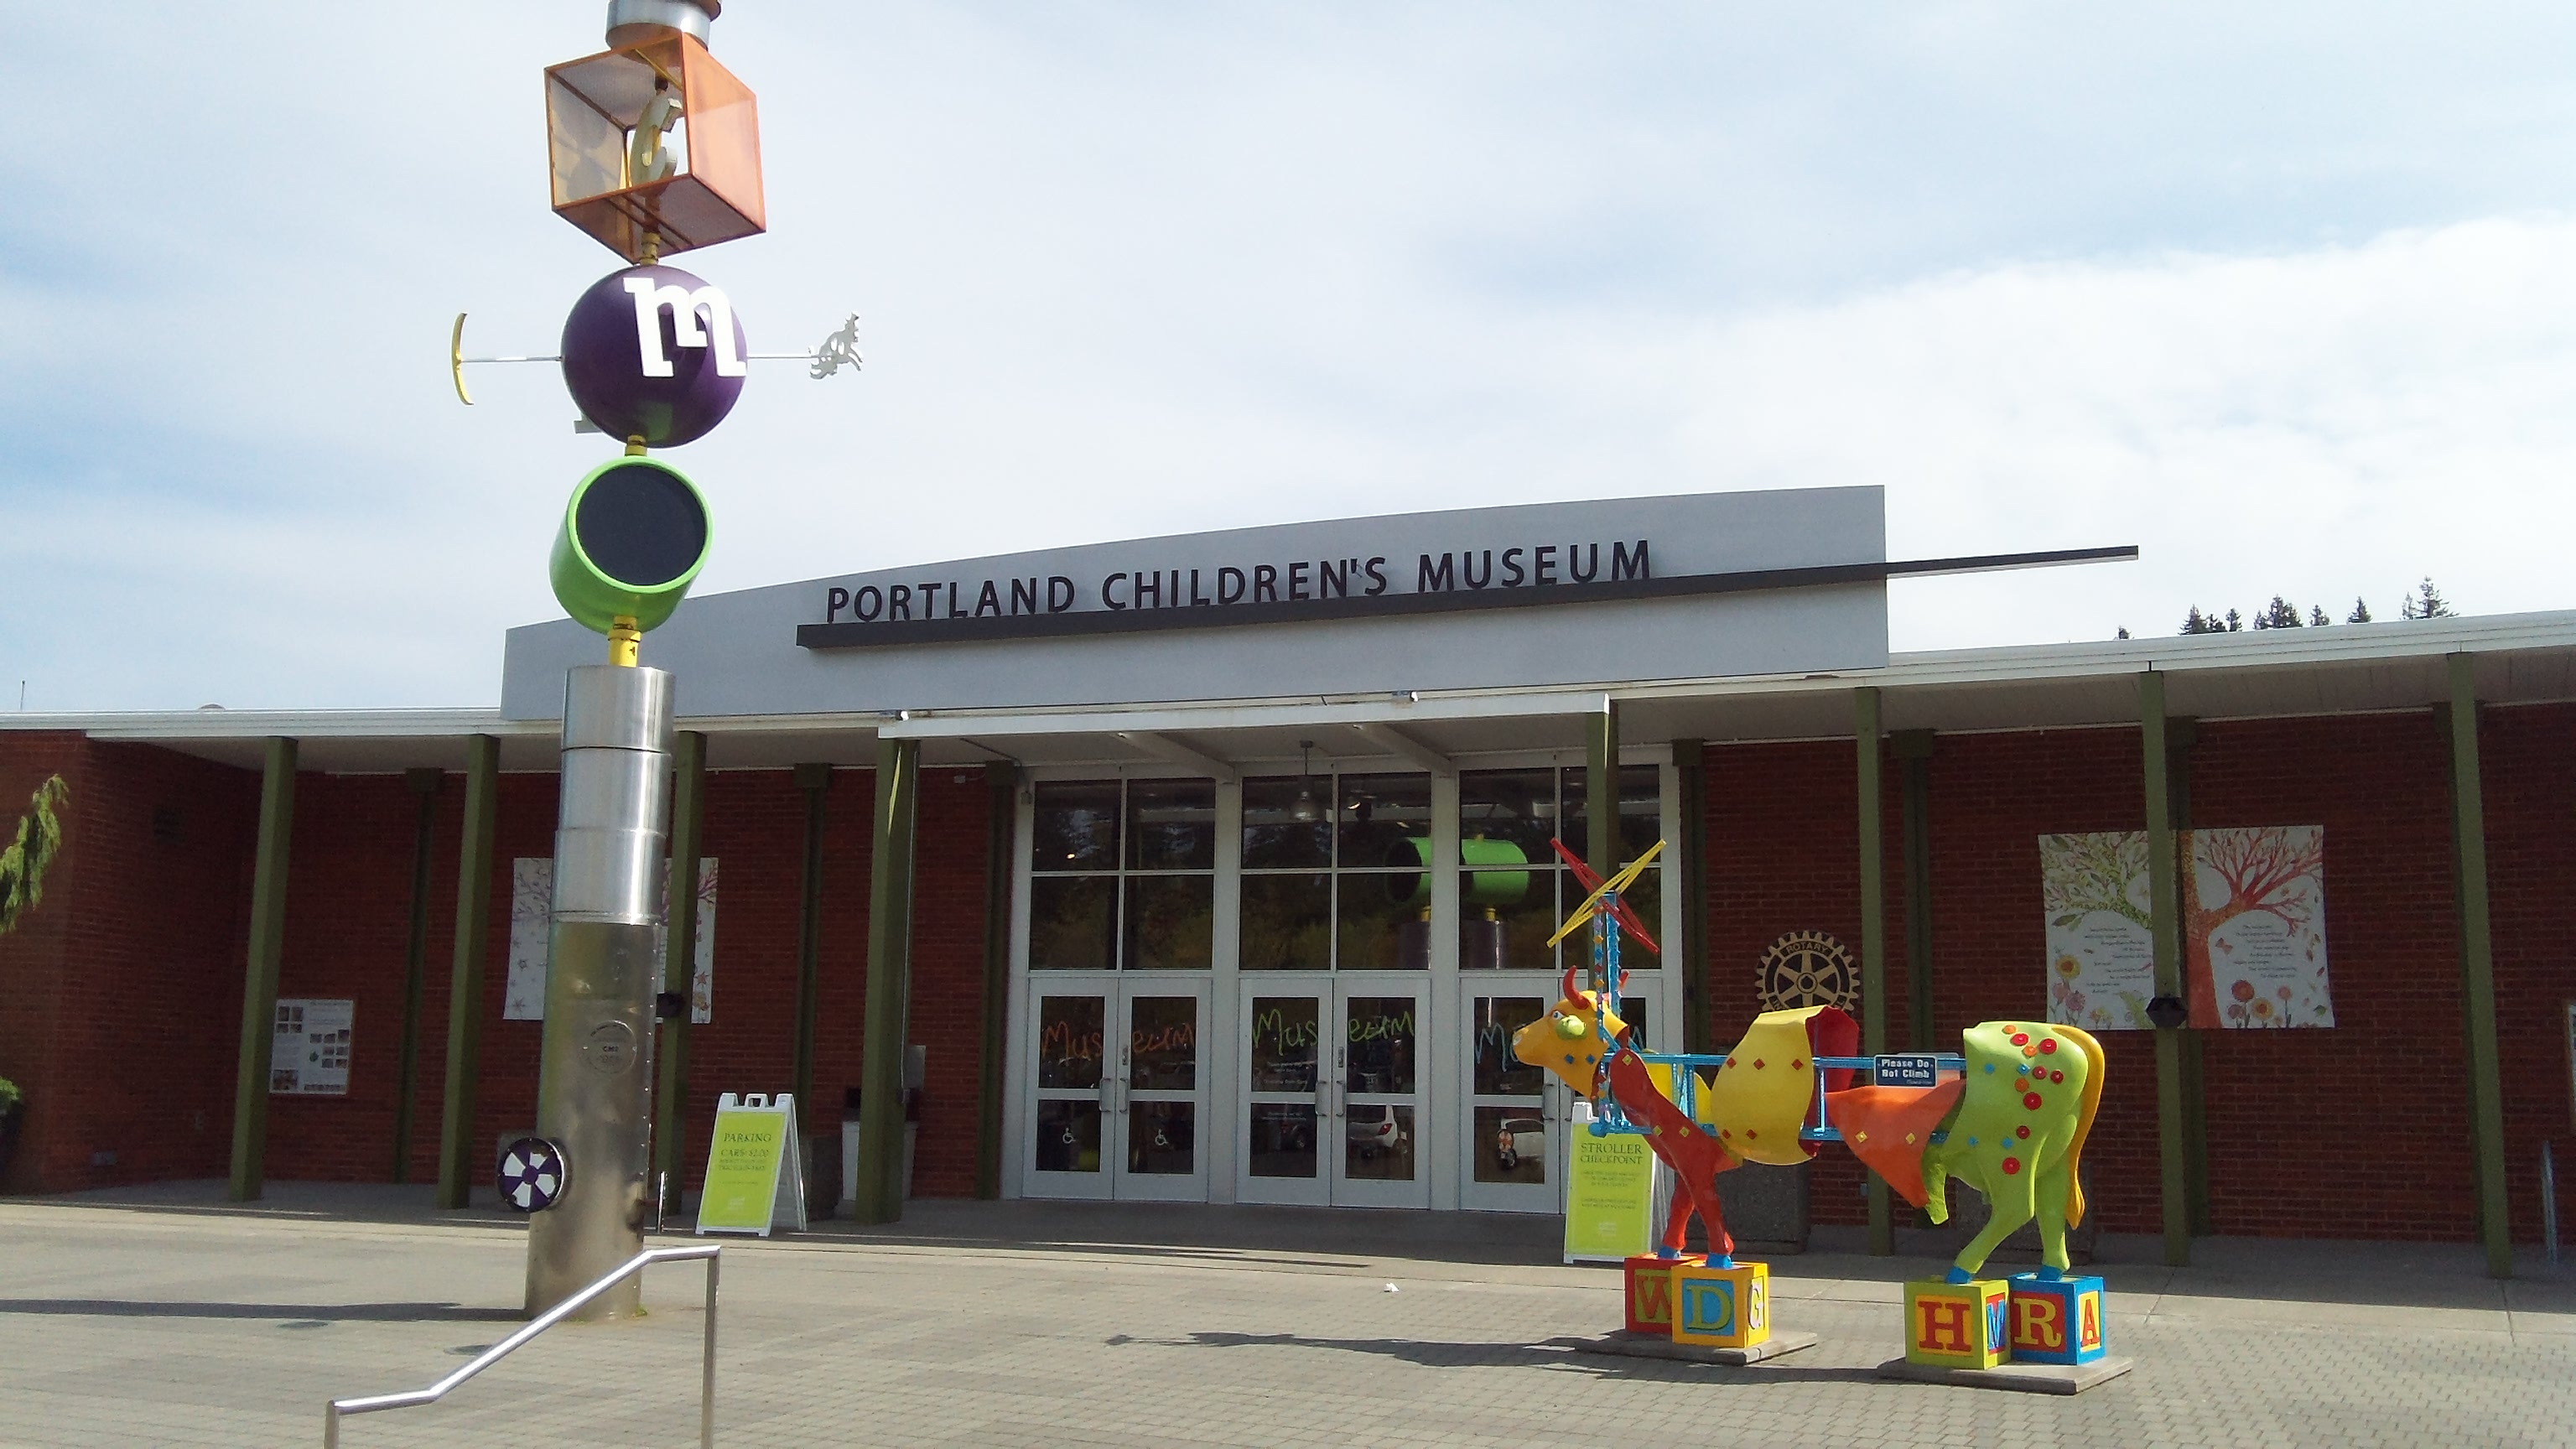 Southwest Portland Park - The Portland Children's Museum at Washington Park